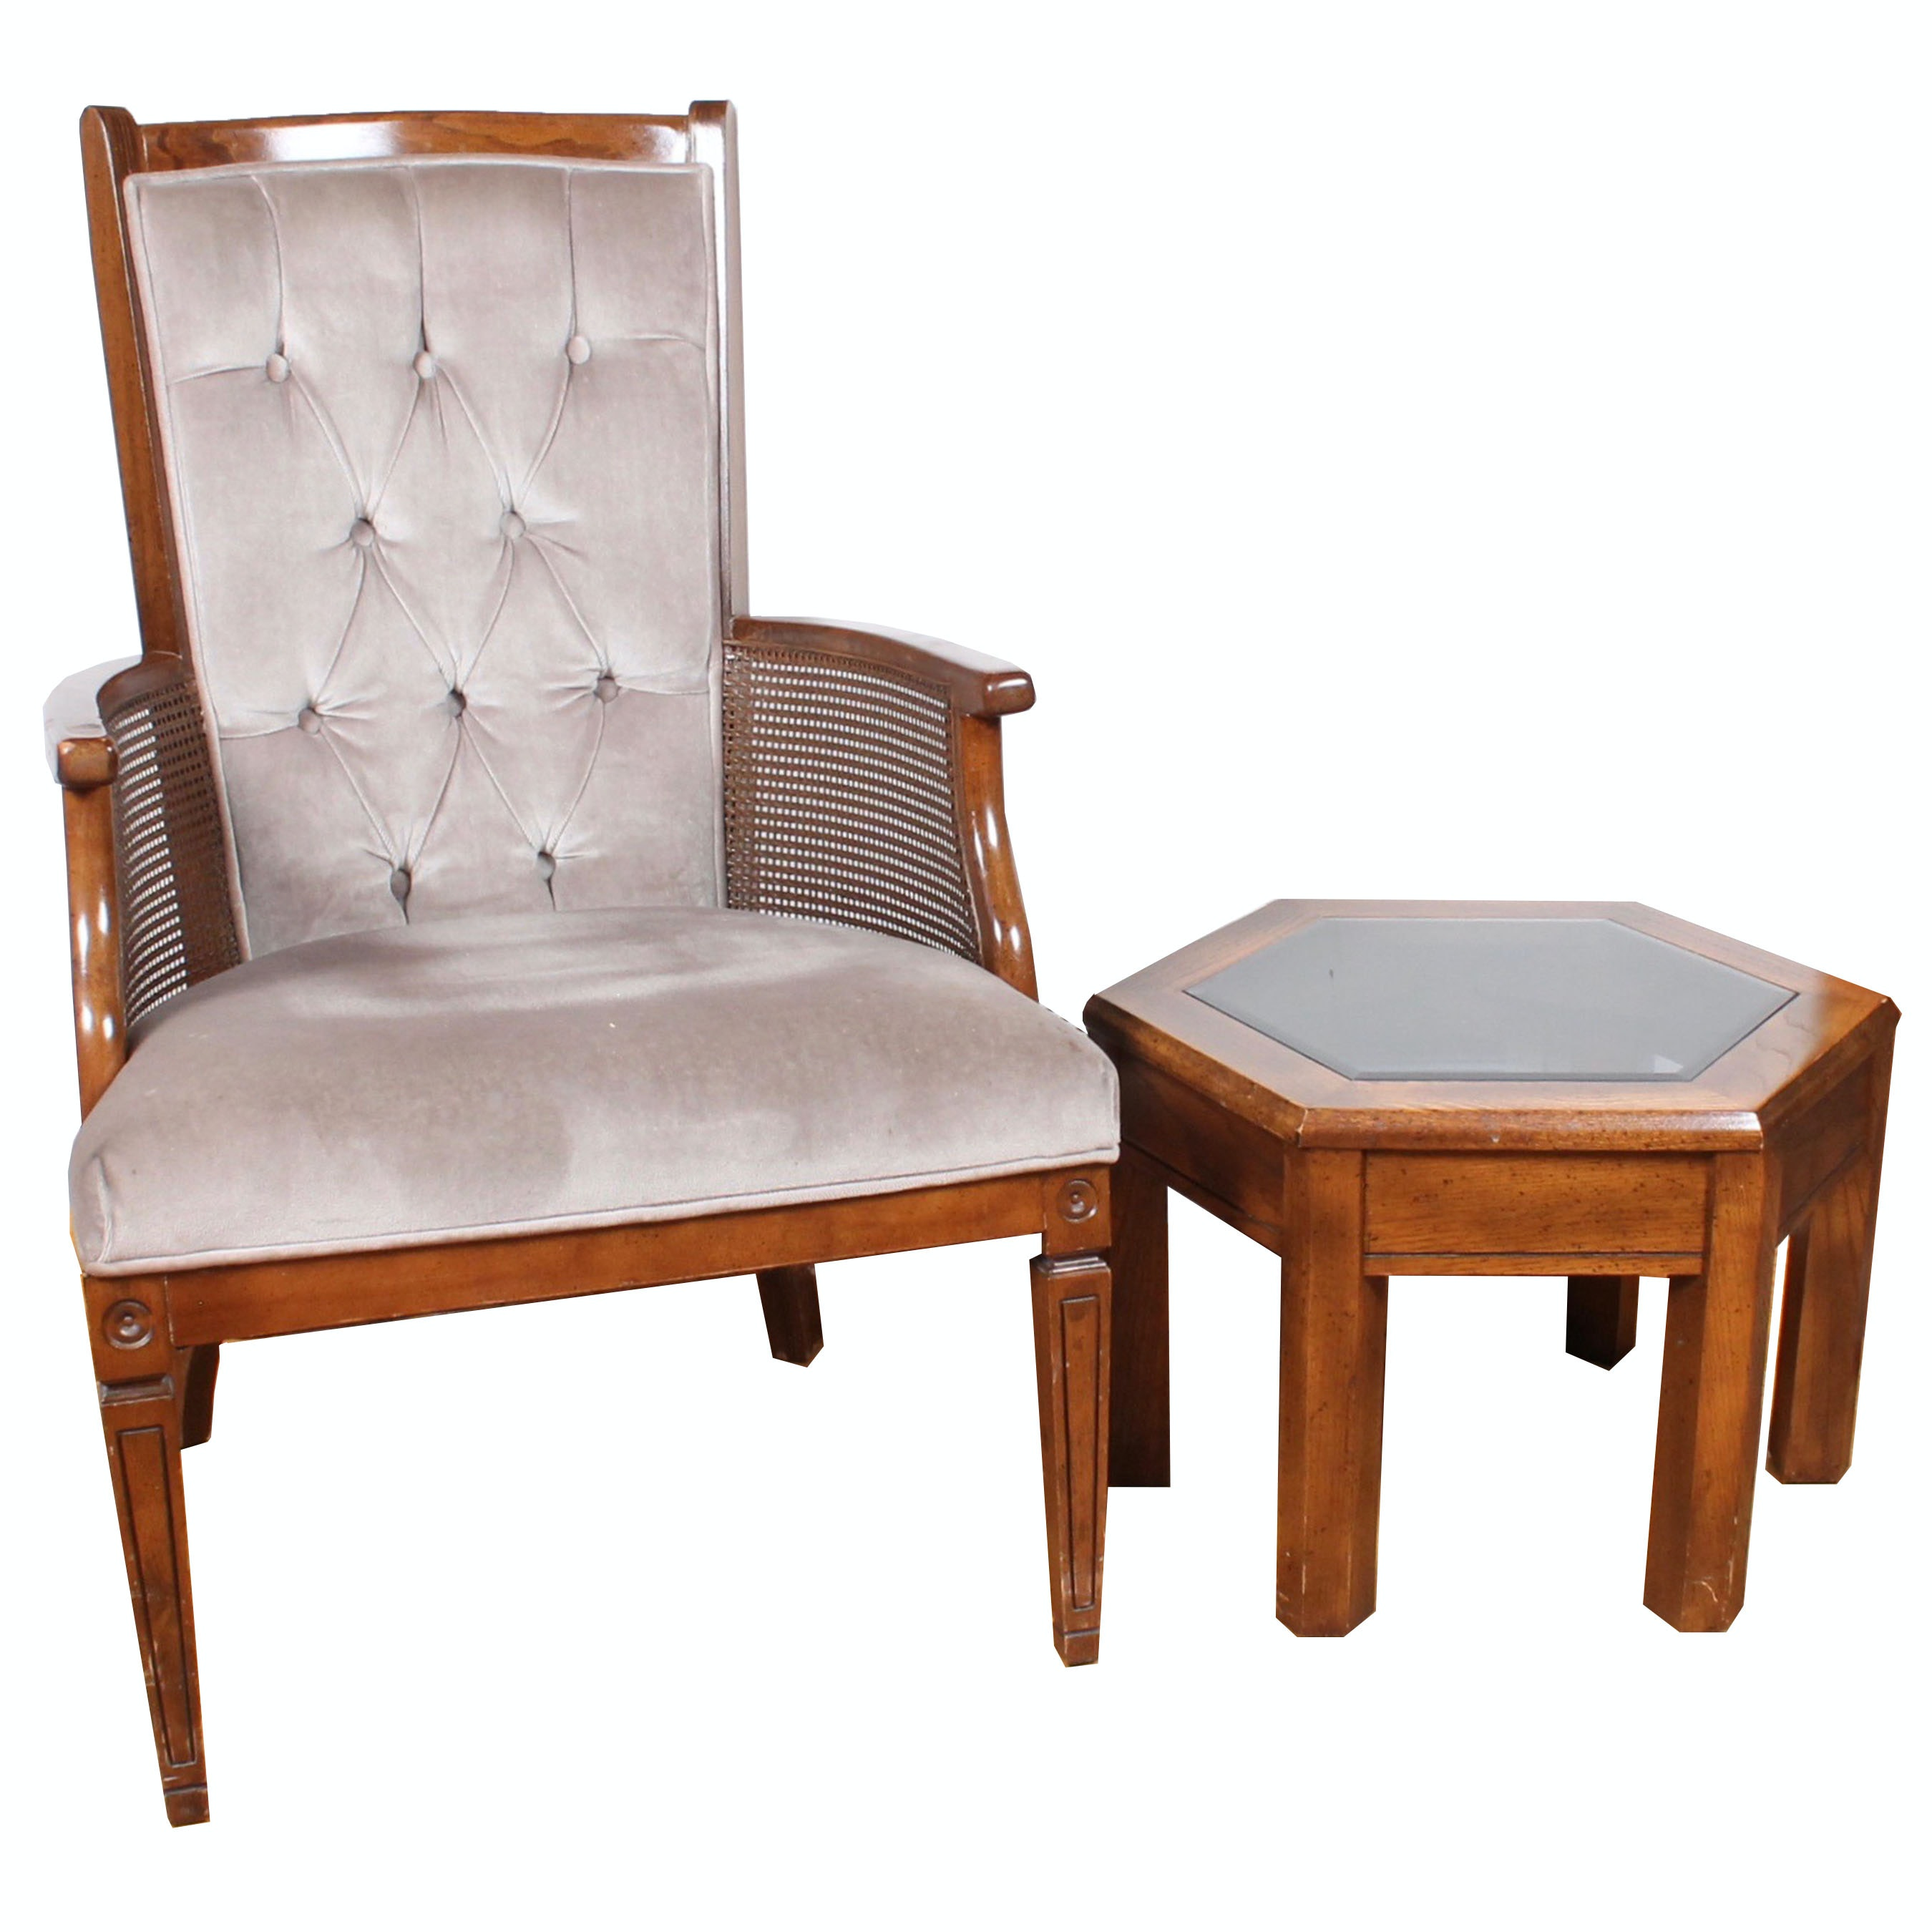 Vintage Accent Table and Chair Pairing